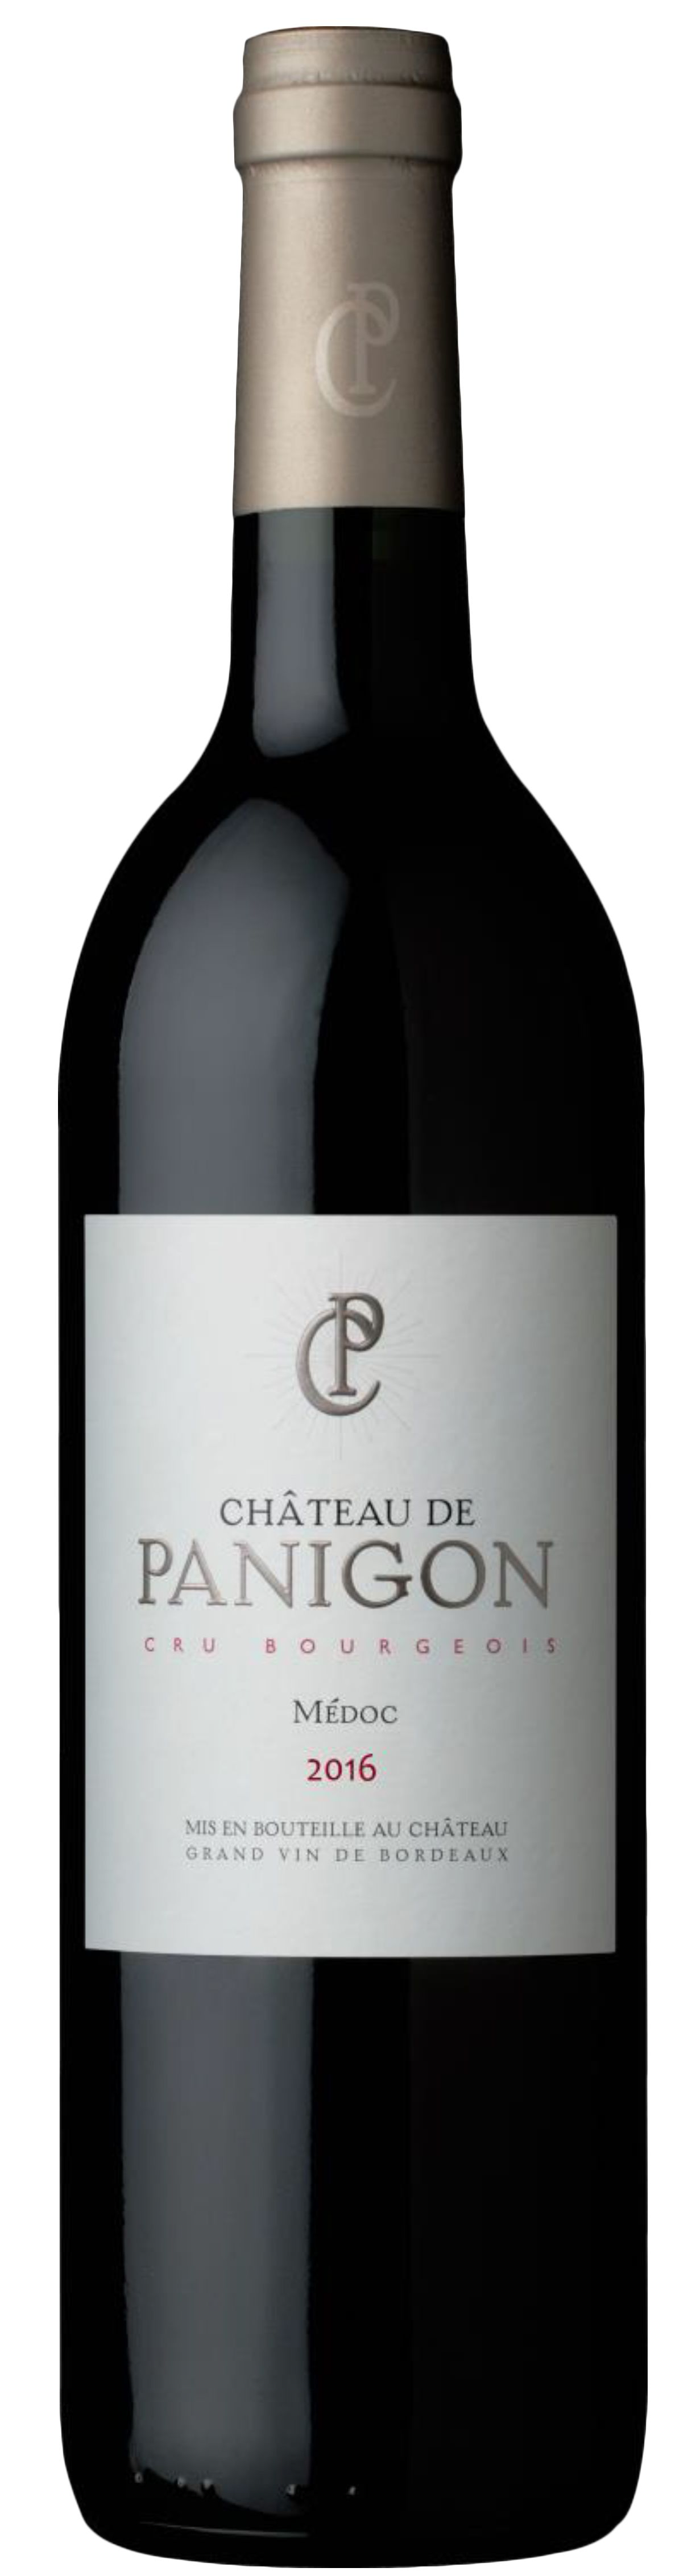 Chateau de Panigon  2016  Front Bottle Shot